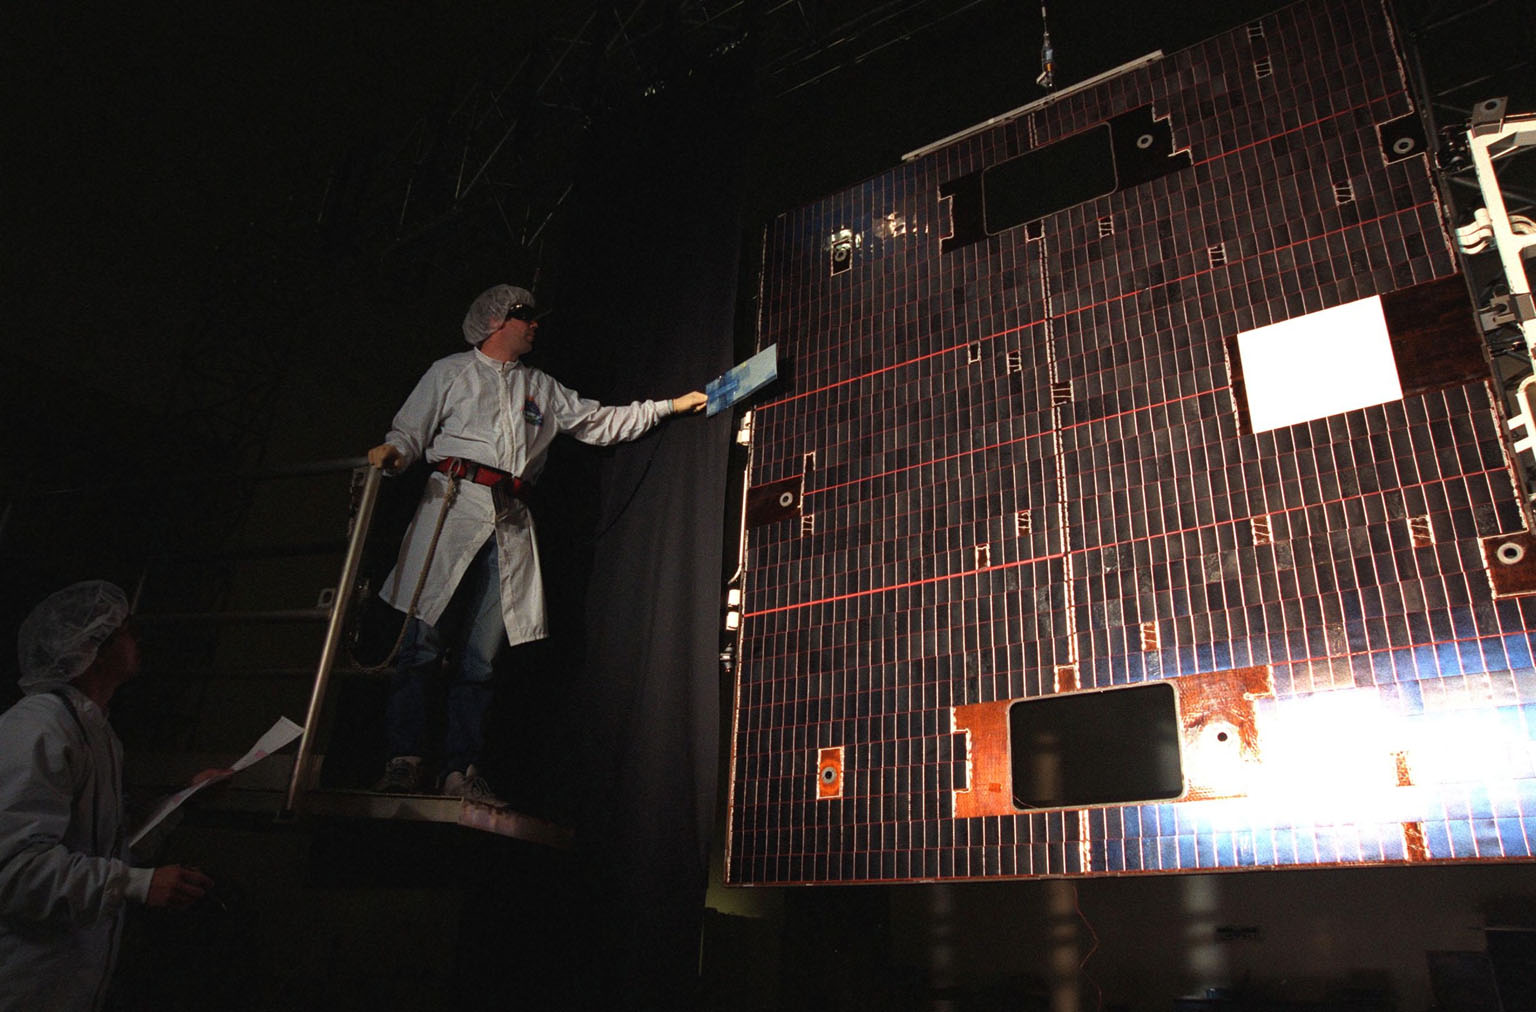 During an illumination test, a Loral worker at Astrotech, Titusville, Fla., verifies circuitry on the solar panel of the GOES-L [ http://www-pao.ksc.nasa.gov/kscpao/captions/subjects/goes-l.htm ] weather satellite. The satellite is to be launched from Cape Canaveral Air Station aboard an Atlas II rocket in late March. The GOES-L is the fourth of a new advanced series of geostationary weather satellites for the National Oceanic and Atmospheric Administration. It is a three-axis inertially stabilized spacecraft that will provide pictures and perform atmospheric sounding at the same time. Once launched, the satellite, to be designated GOES-11, will undergo checkout and provide backup capabilities for the existing, aging GOES East weather satellite